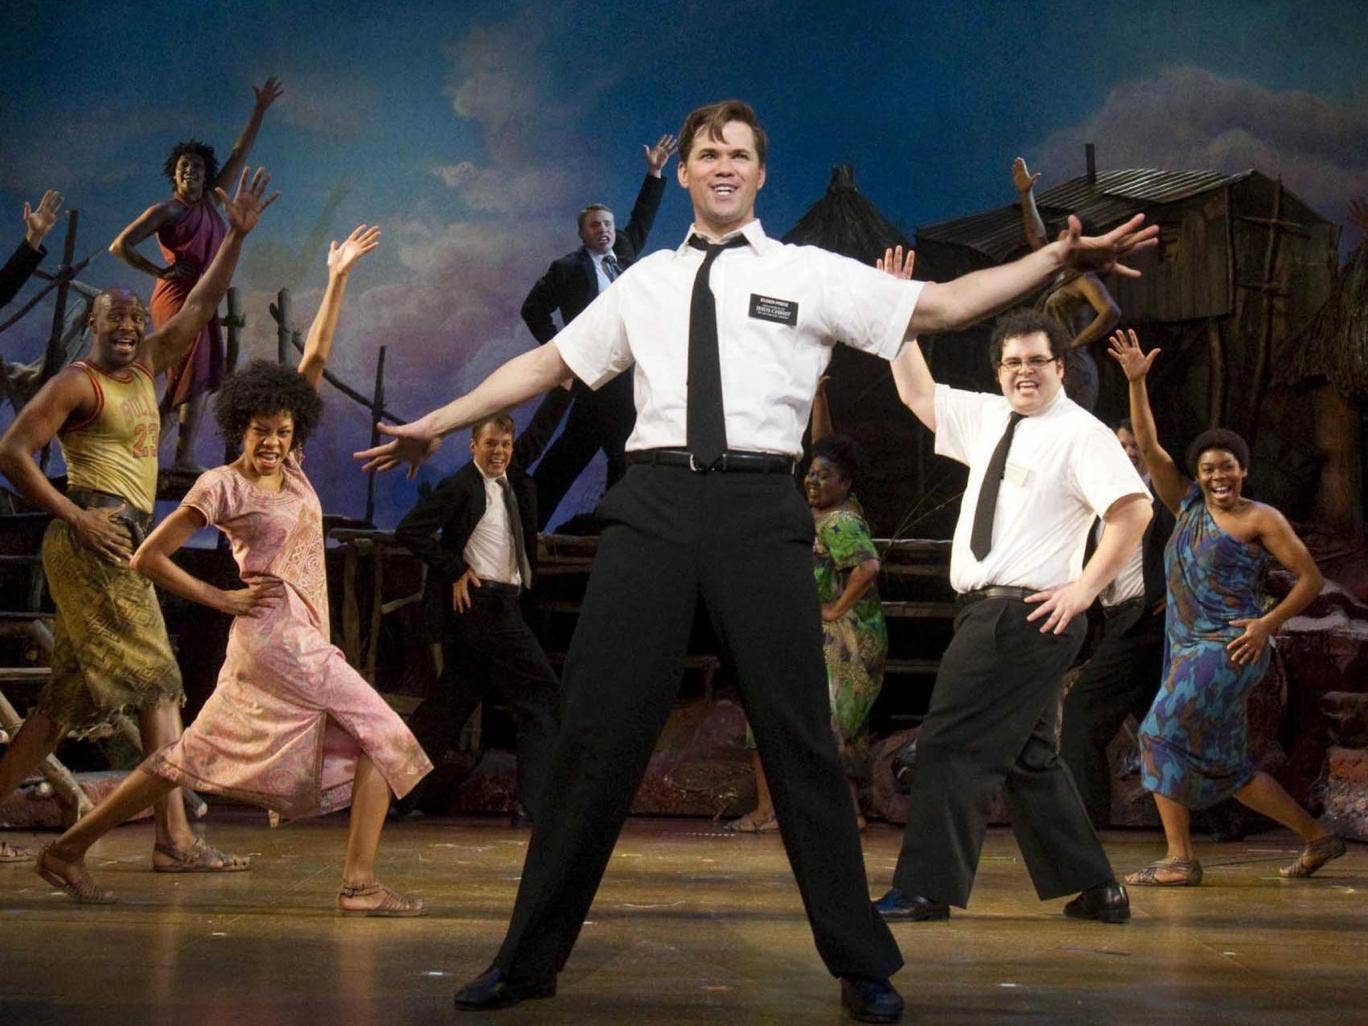 Best-seat ticket prices for the 'Book of Mormon' have doubled in just a year